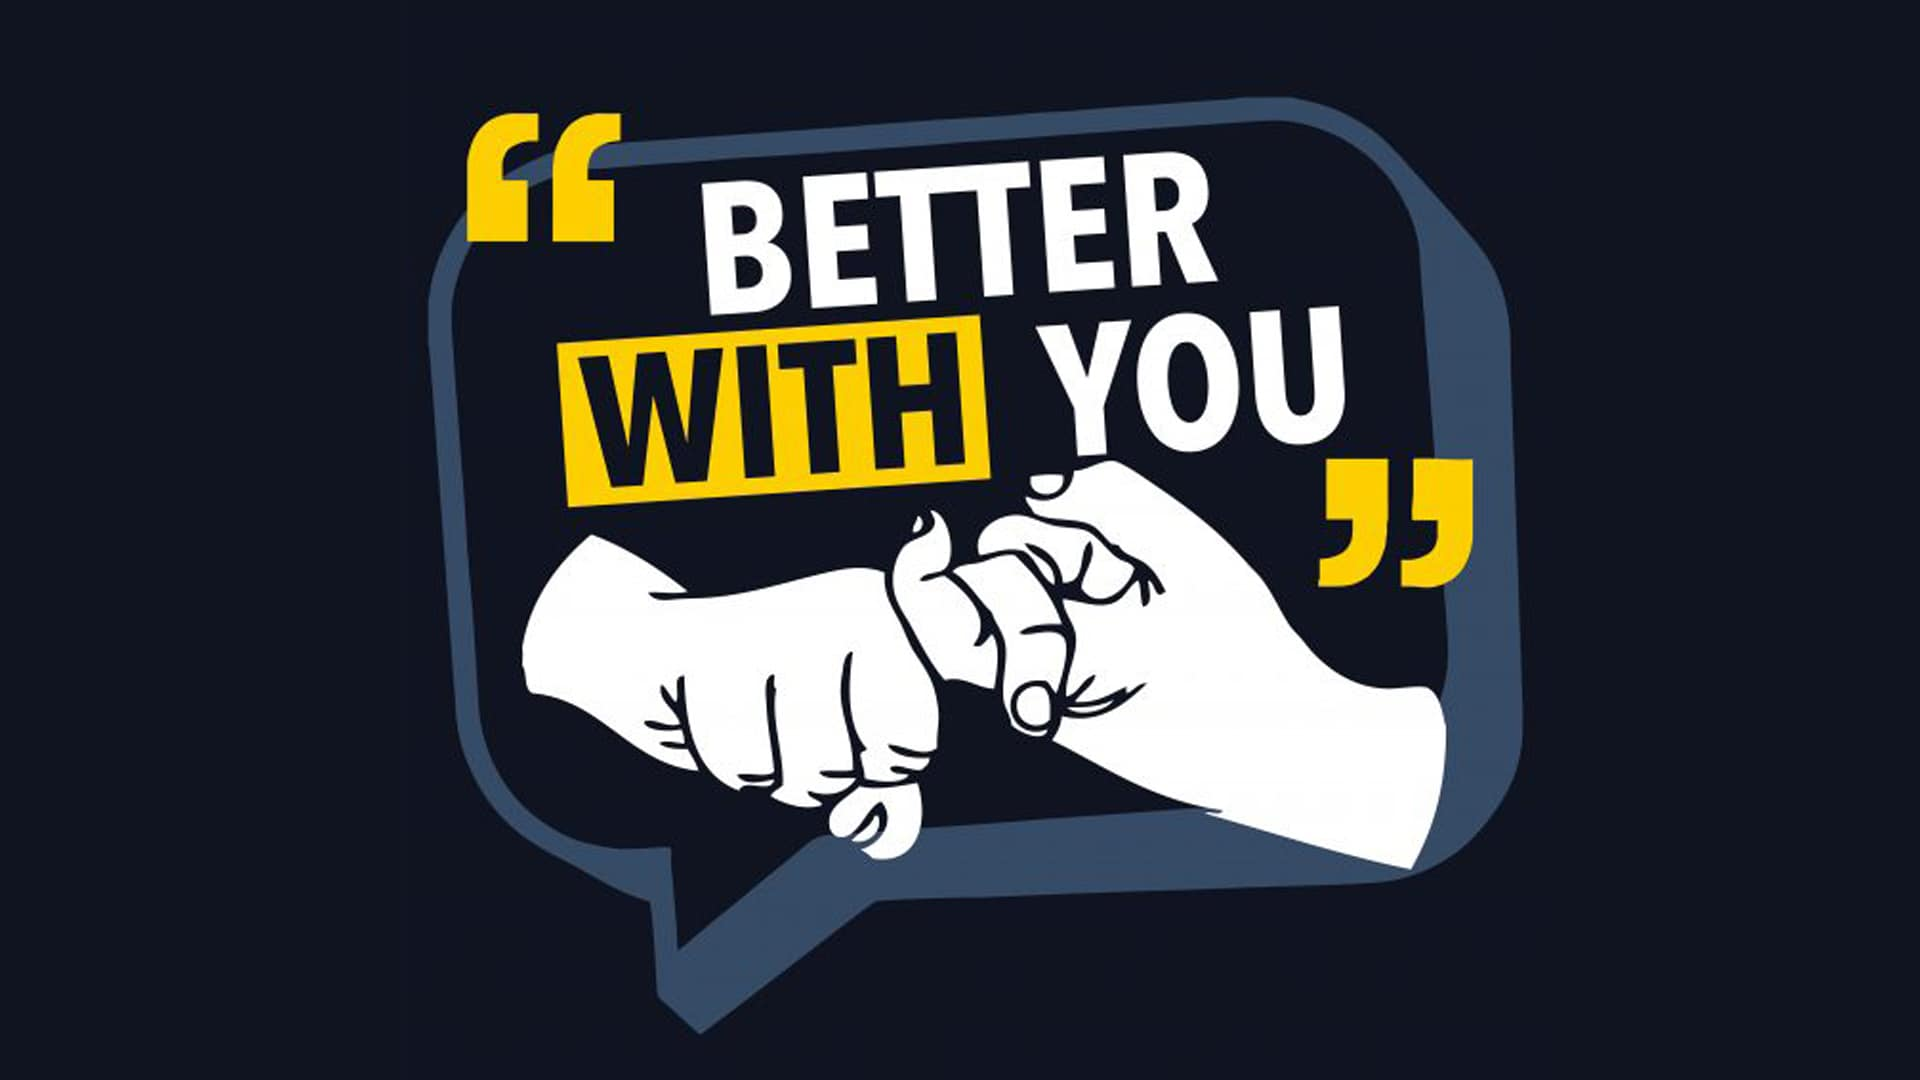 Better With You - Episode 1: Margarita